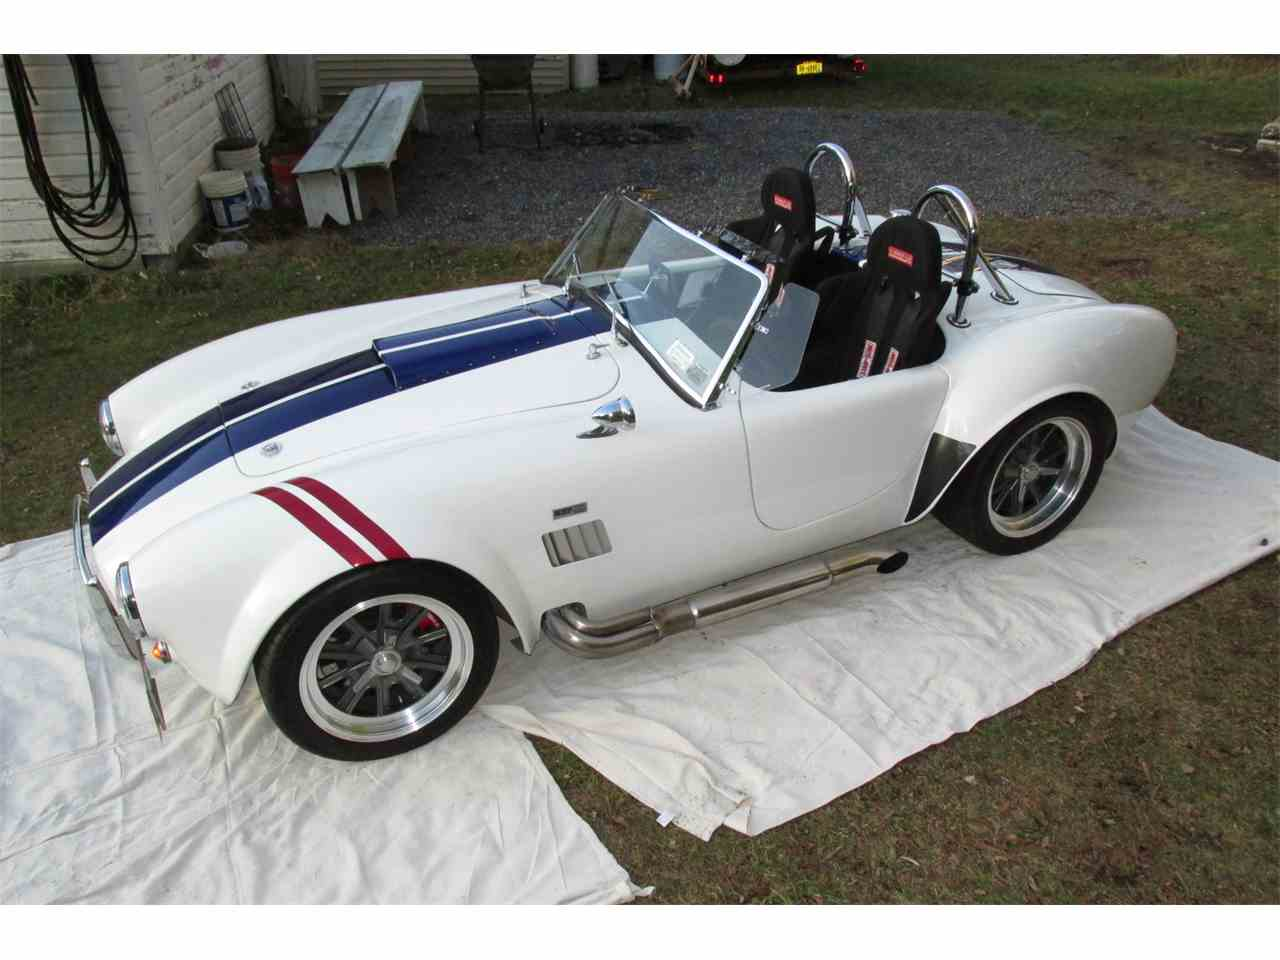 Large Picture of Classic 1965 Shelby Cobra Replica located in New York - $49,000.00 Offered by a Private Seller - N693